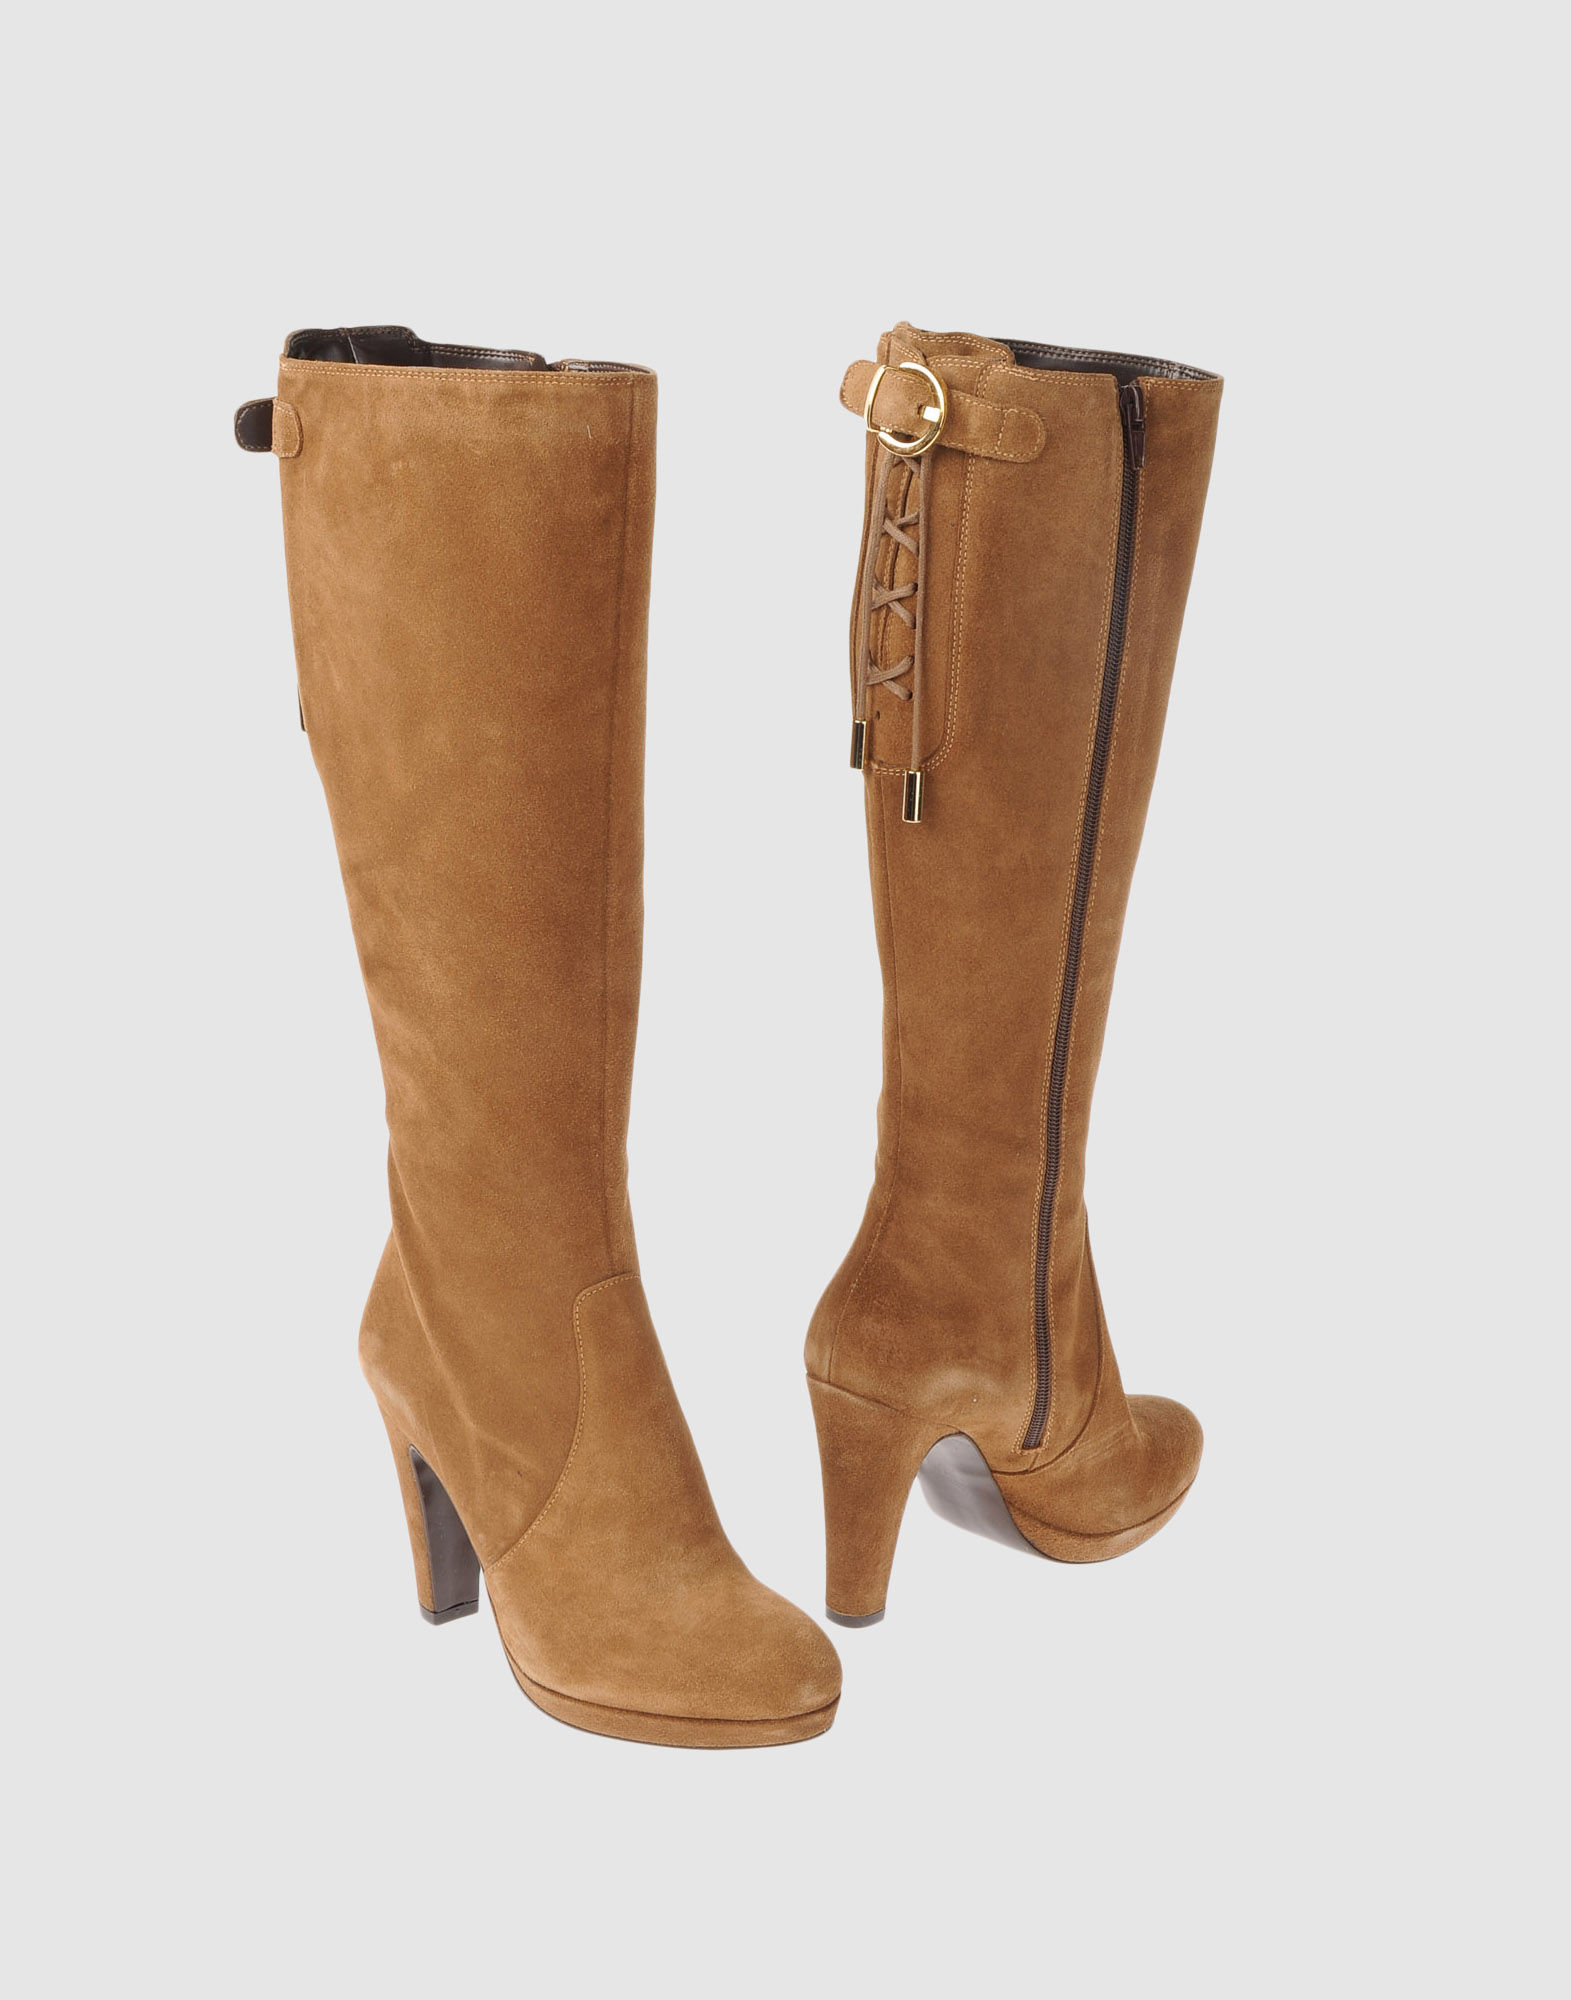 19ceb61ff50004 Lyst - Les Trois Garçons High Heeled Boots in Brown